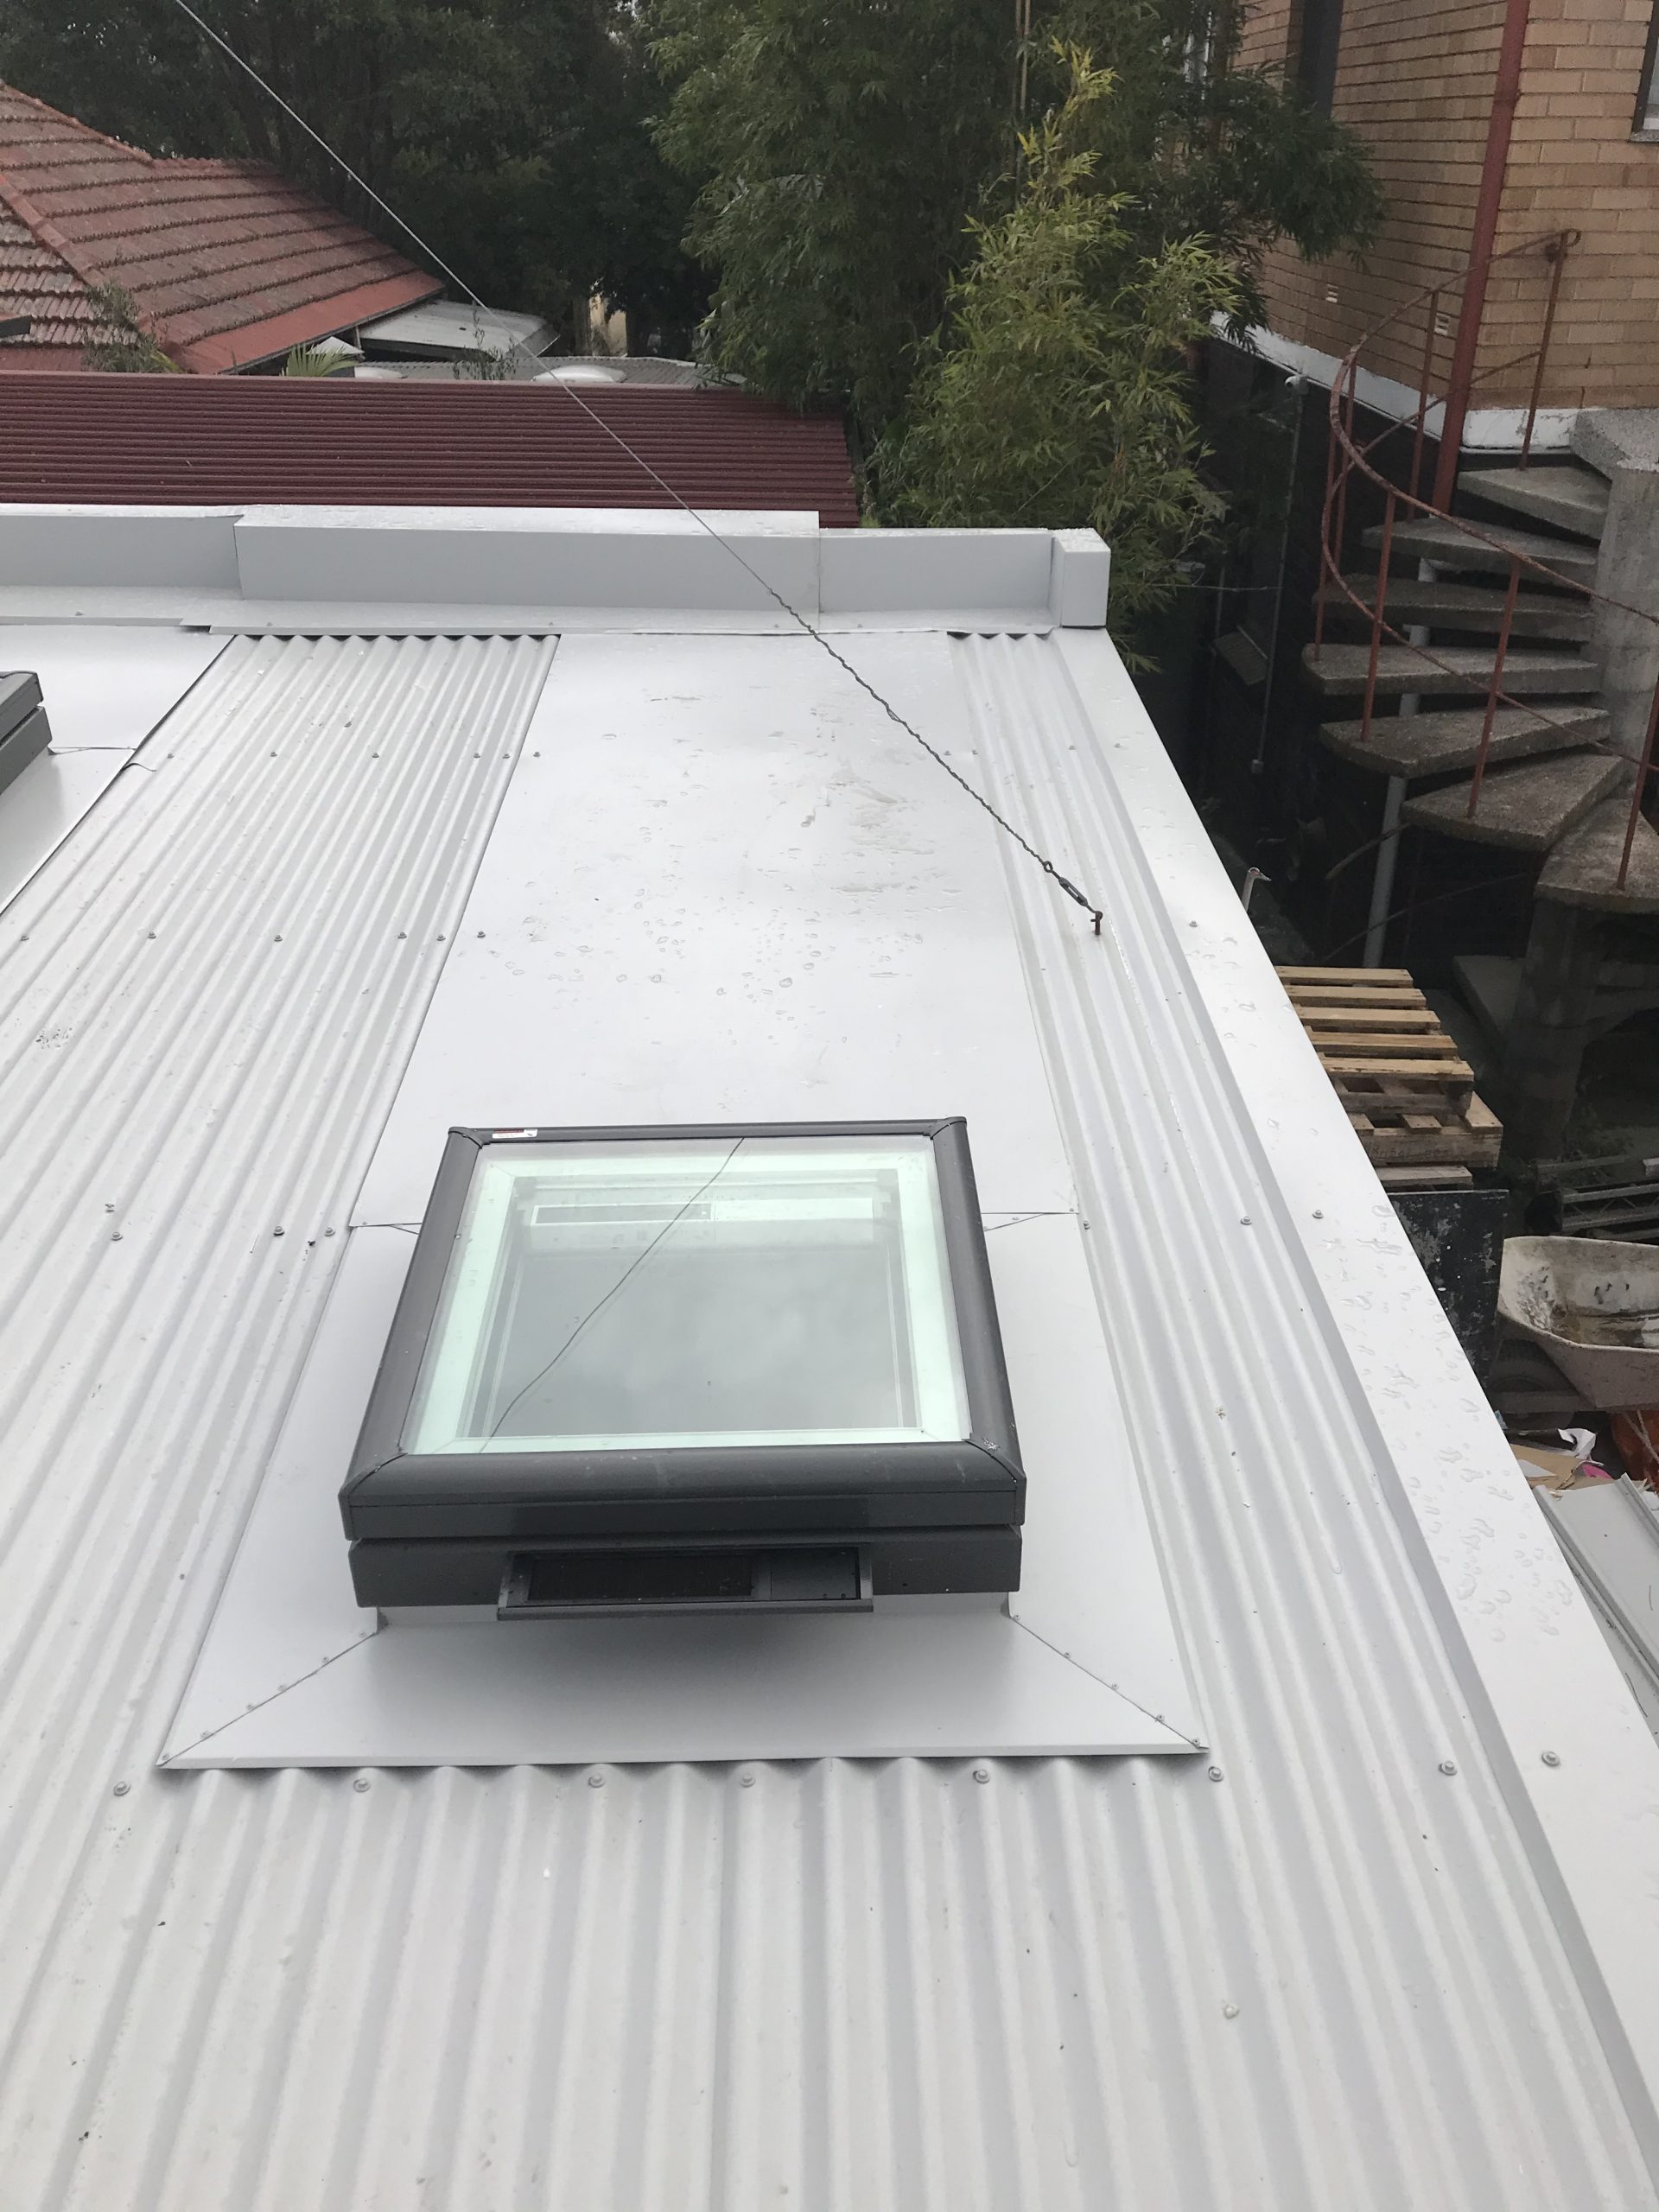 Roof and flashings and skylights